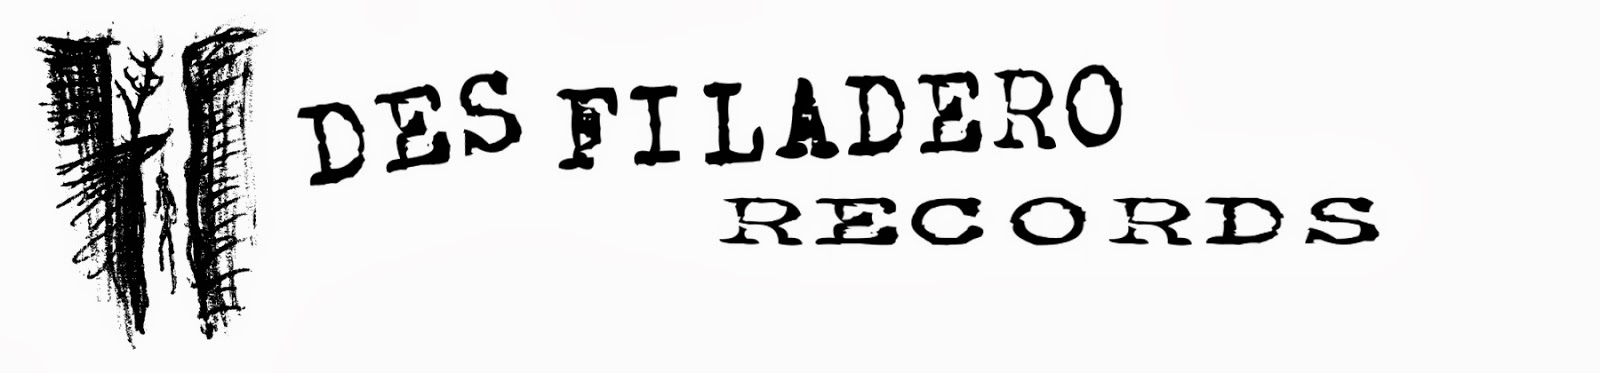 DESFILADERO RECORDS